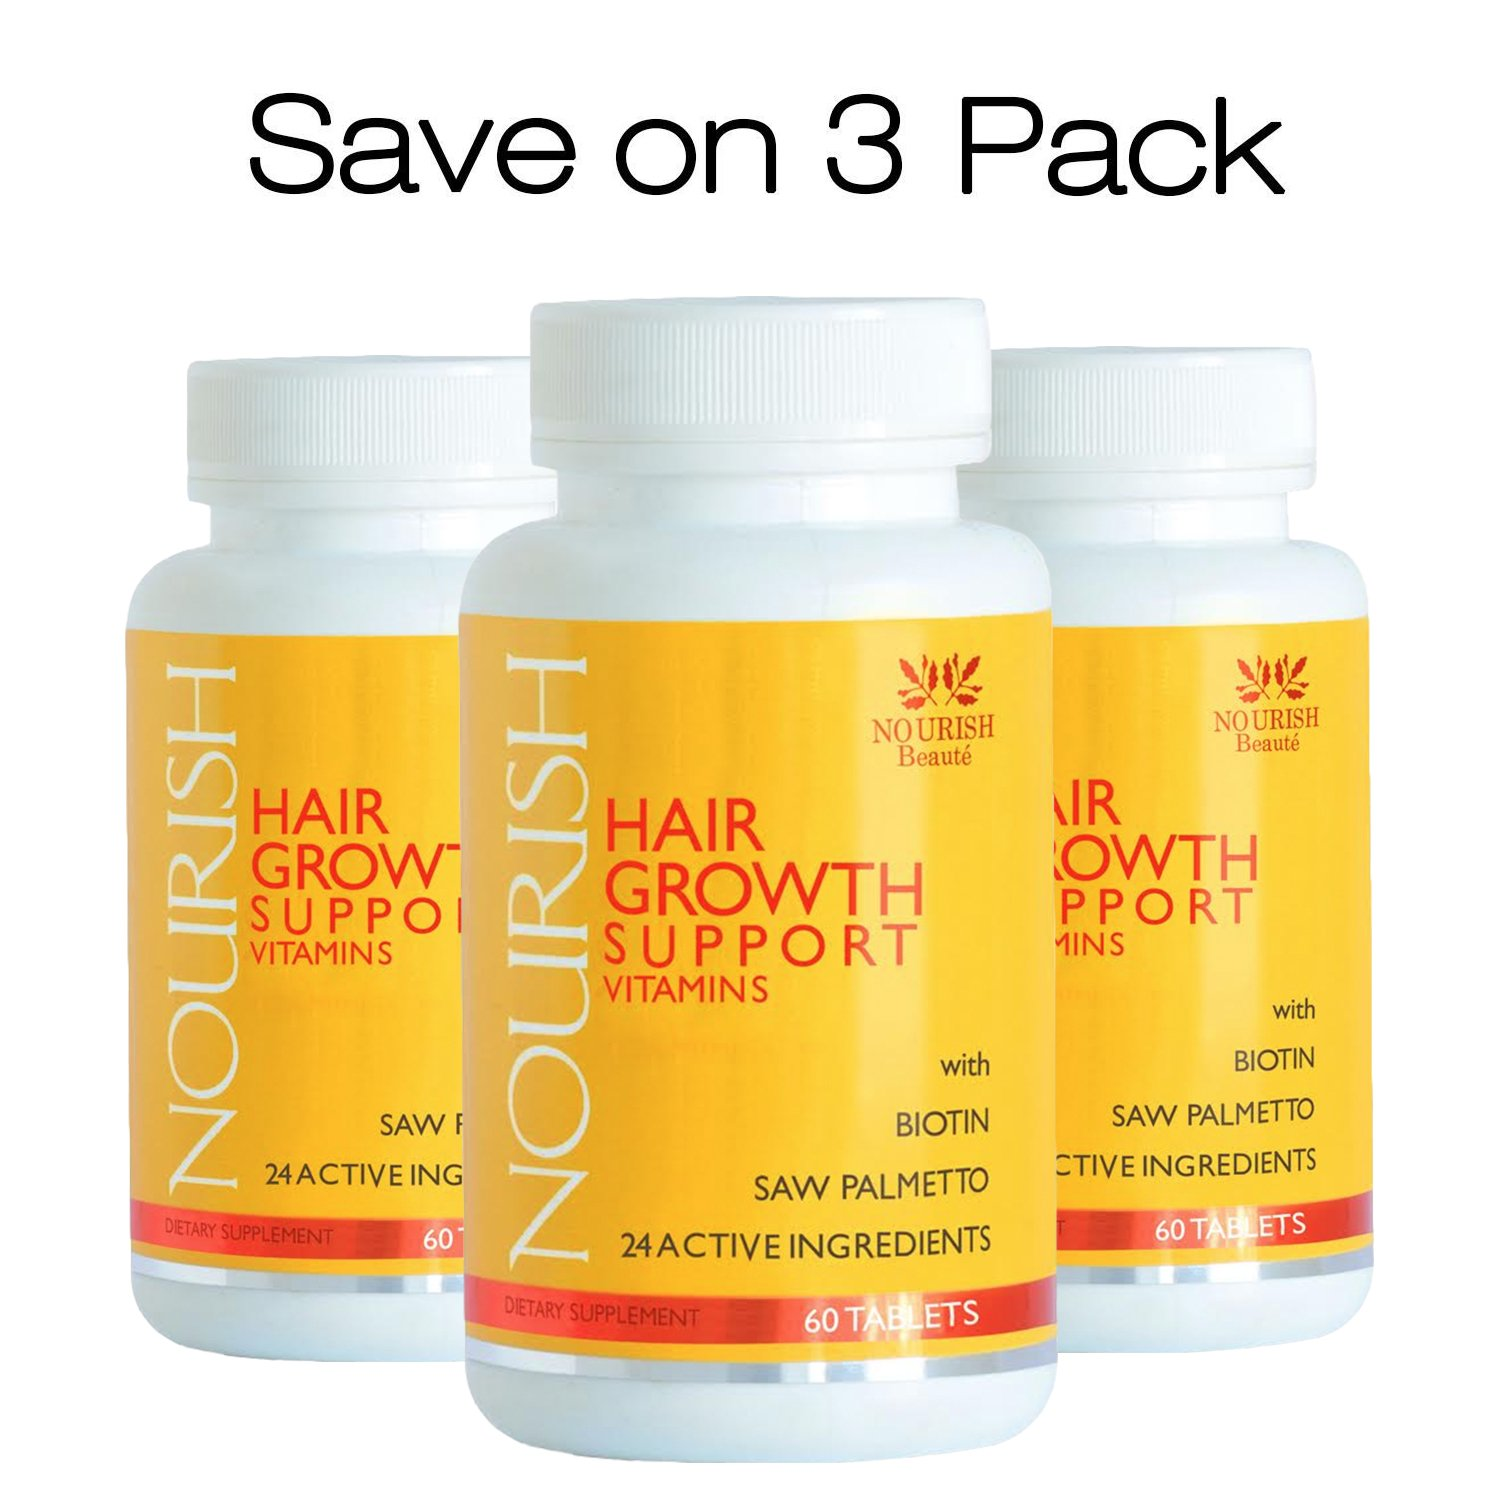 PRICE REDUCTION! 3 PAK Nourish Hair Growth Vitamins with Biotin and DHT Blockers- Guaranteed Results, Less Loss and Better Skin and Nails Nourish Beaute